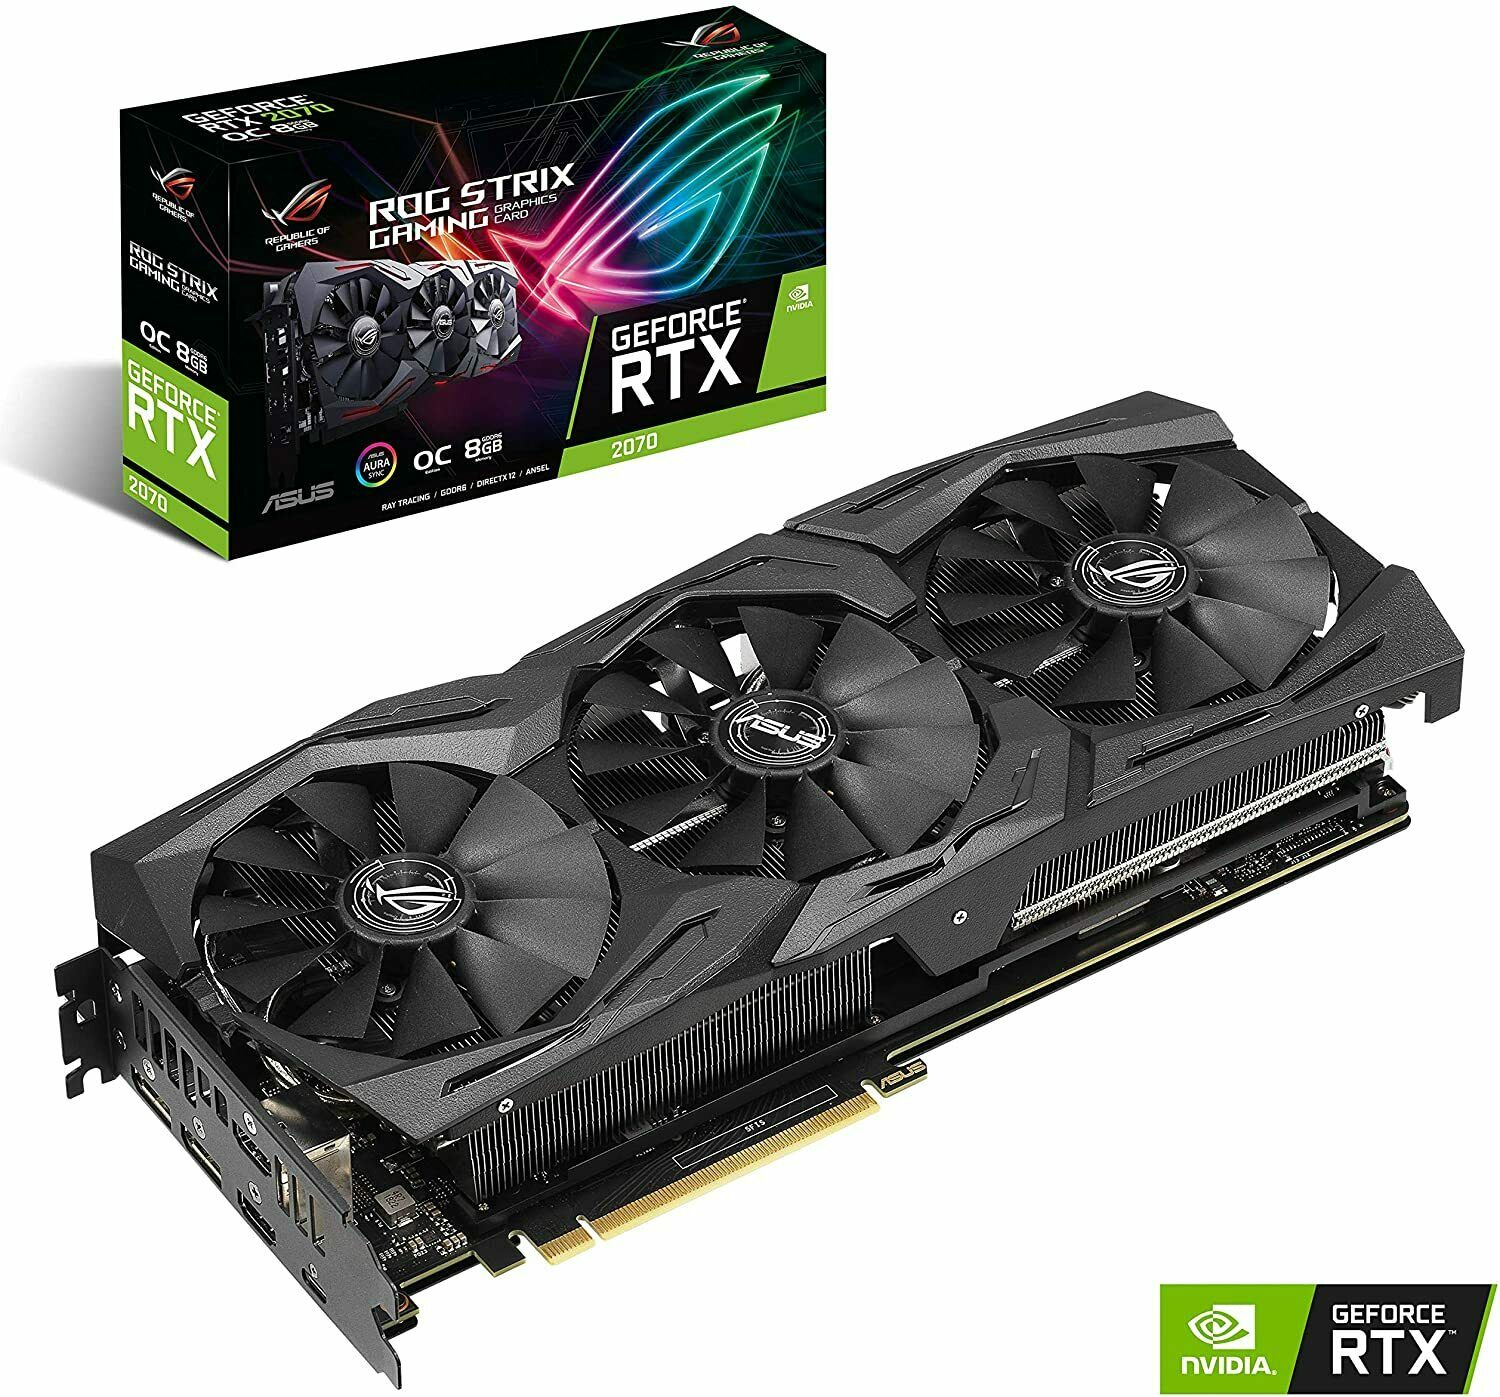 Asus rog strix geforce rtx 2070 gddr6 8 go carte graphique (trusted seller✅)